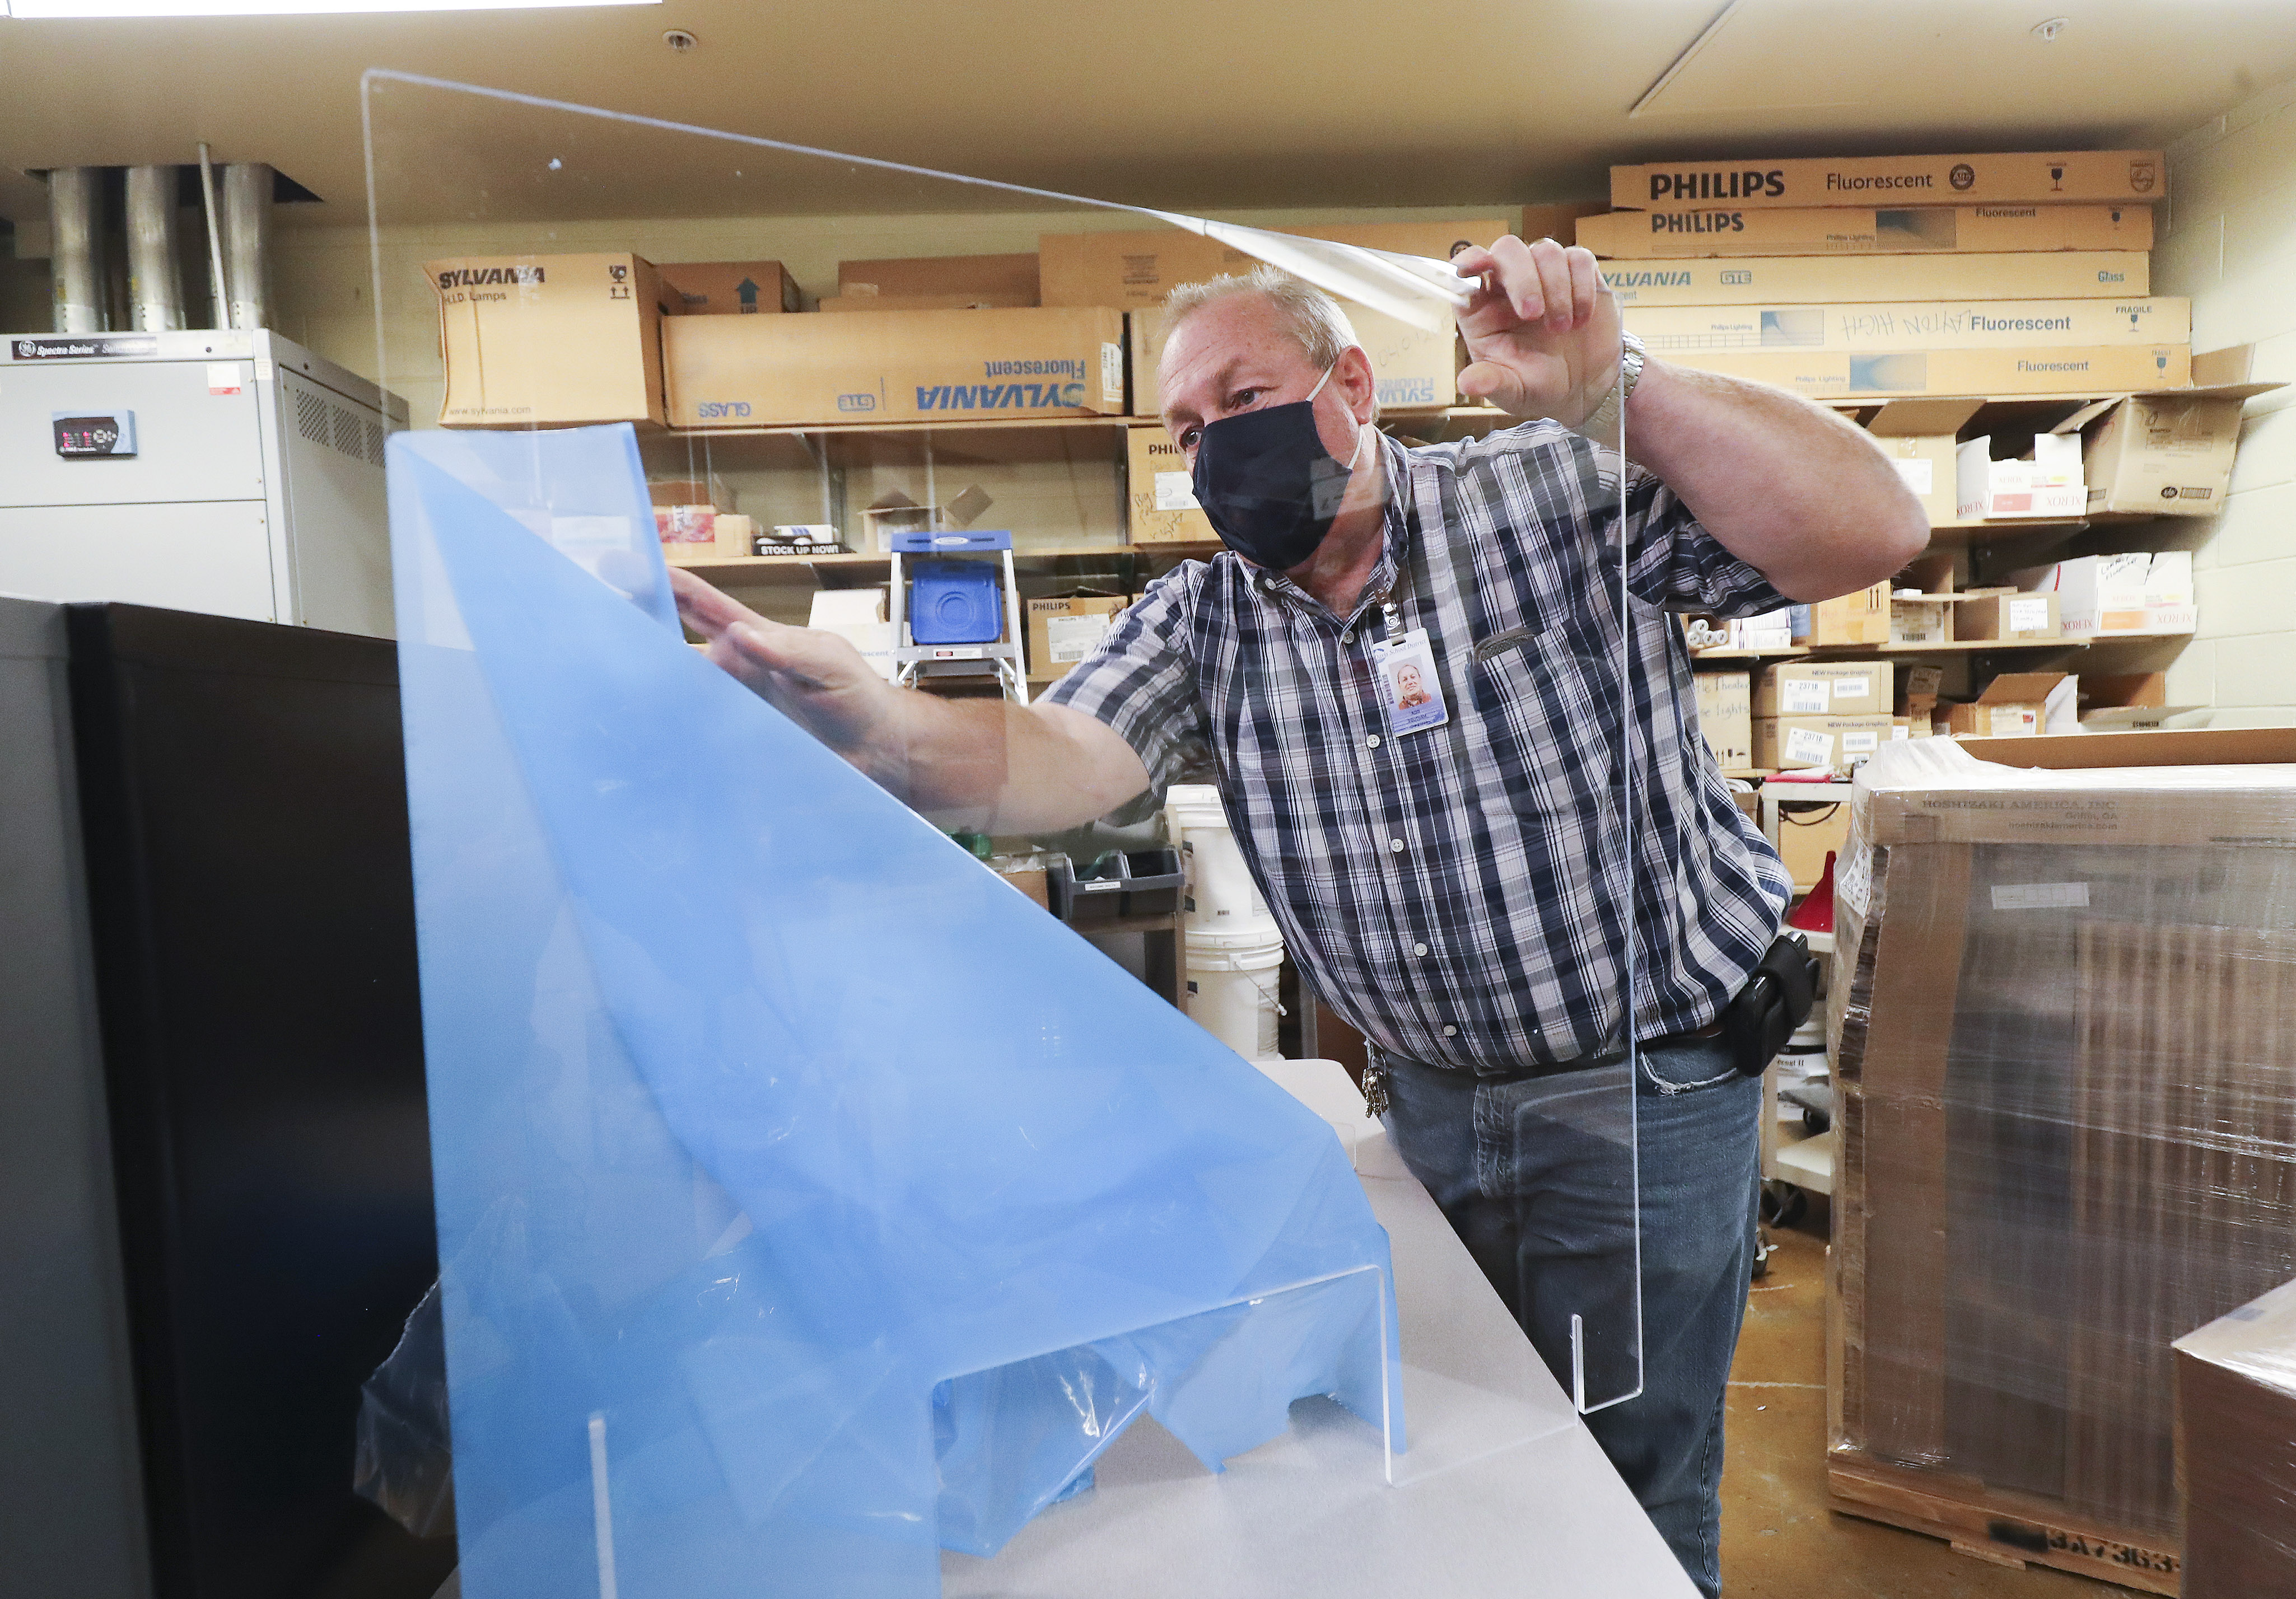 Layton High School facilities coordinator Rod Southam unpacks portable desk shields at the school in Layton on Tuesday, Sept. 29, 2020. Southam is the winner of the national U.S. Department of Education RISE award, which honors classified school employees who exemplify excellence in work performance, leadership and community involvement.